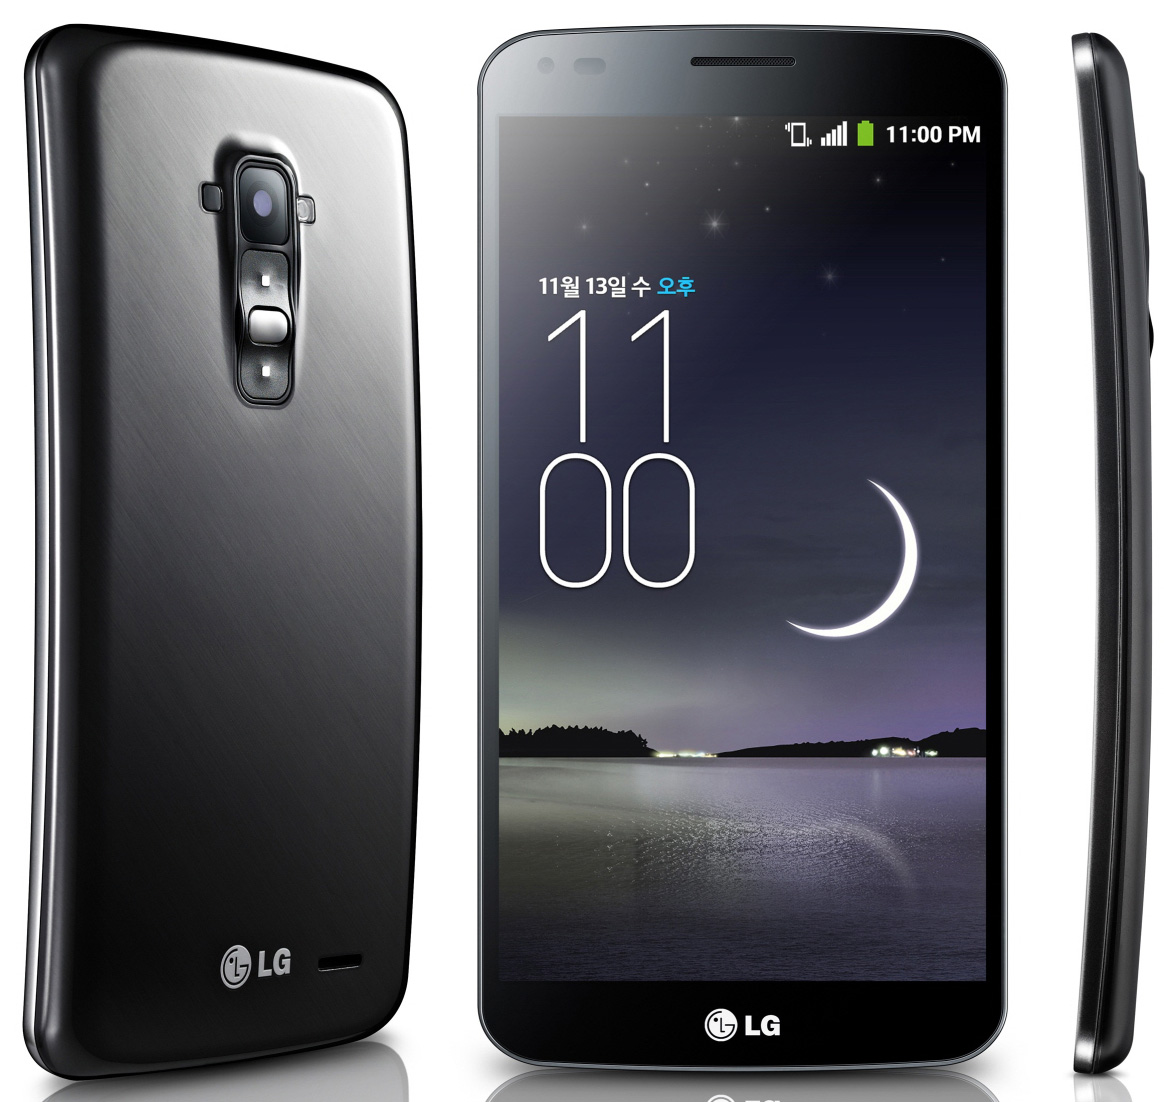 LG G Flex Full HD Display 4G LTE Android Phone with Curved Display